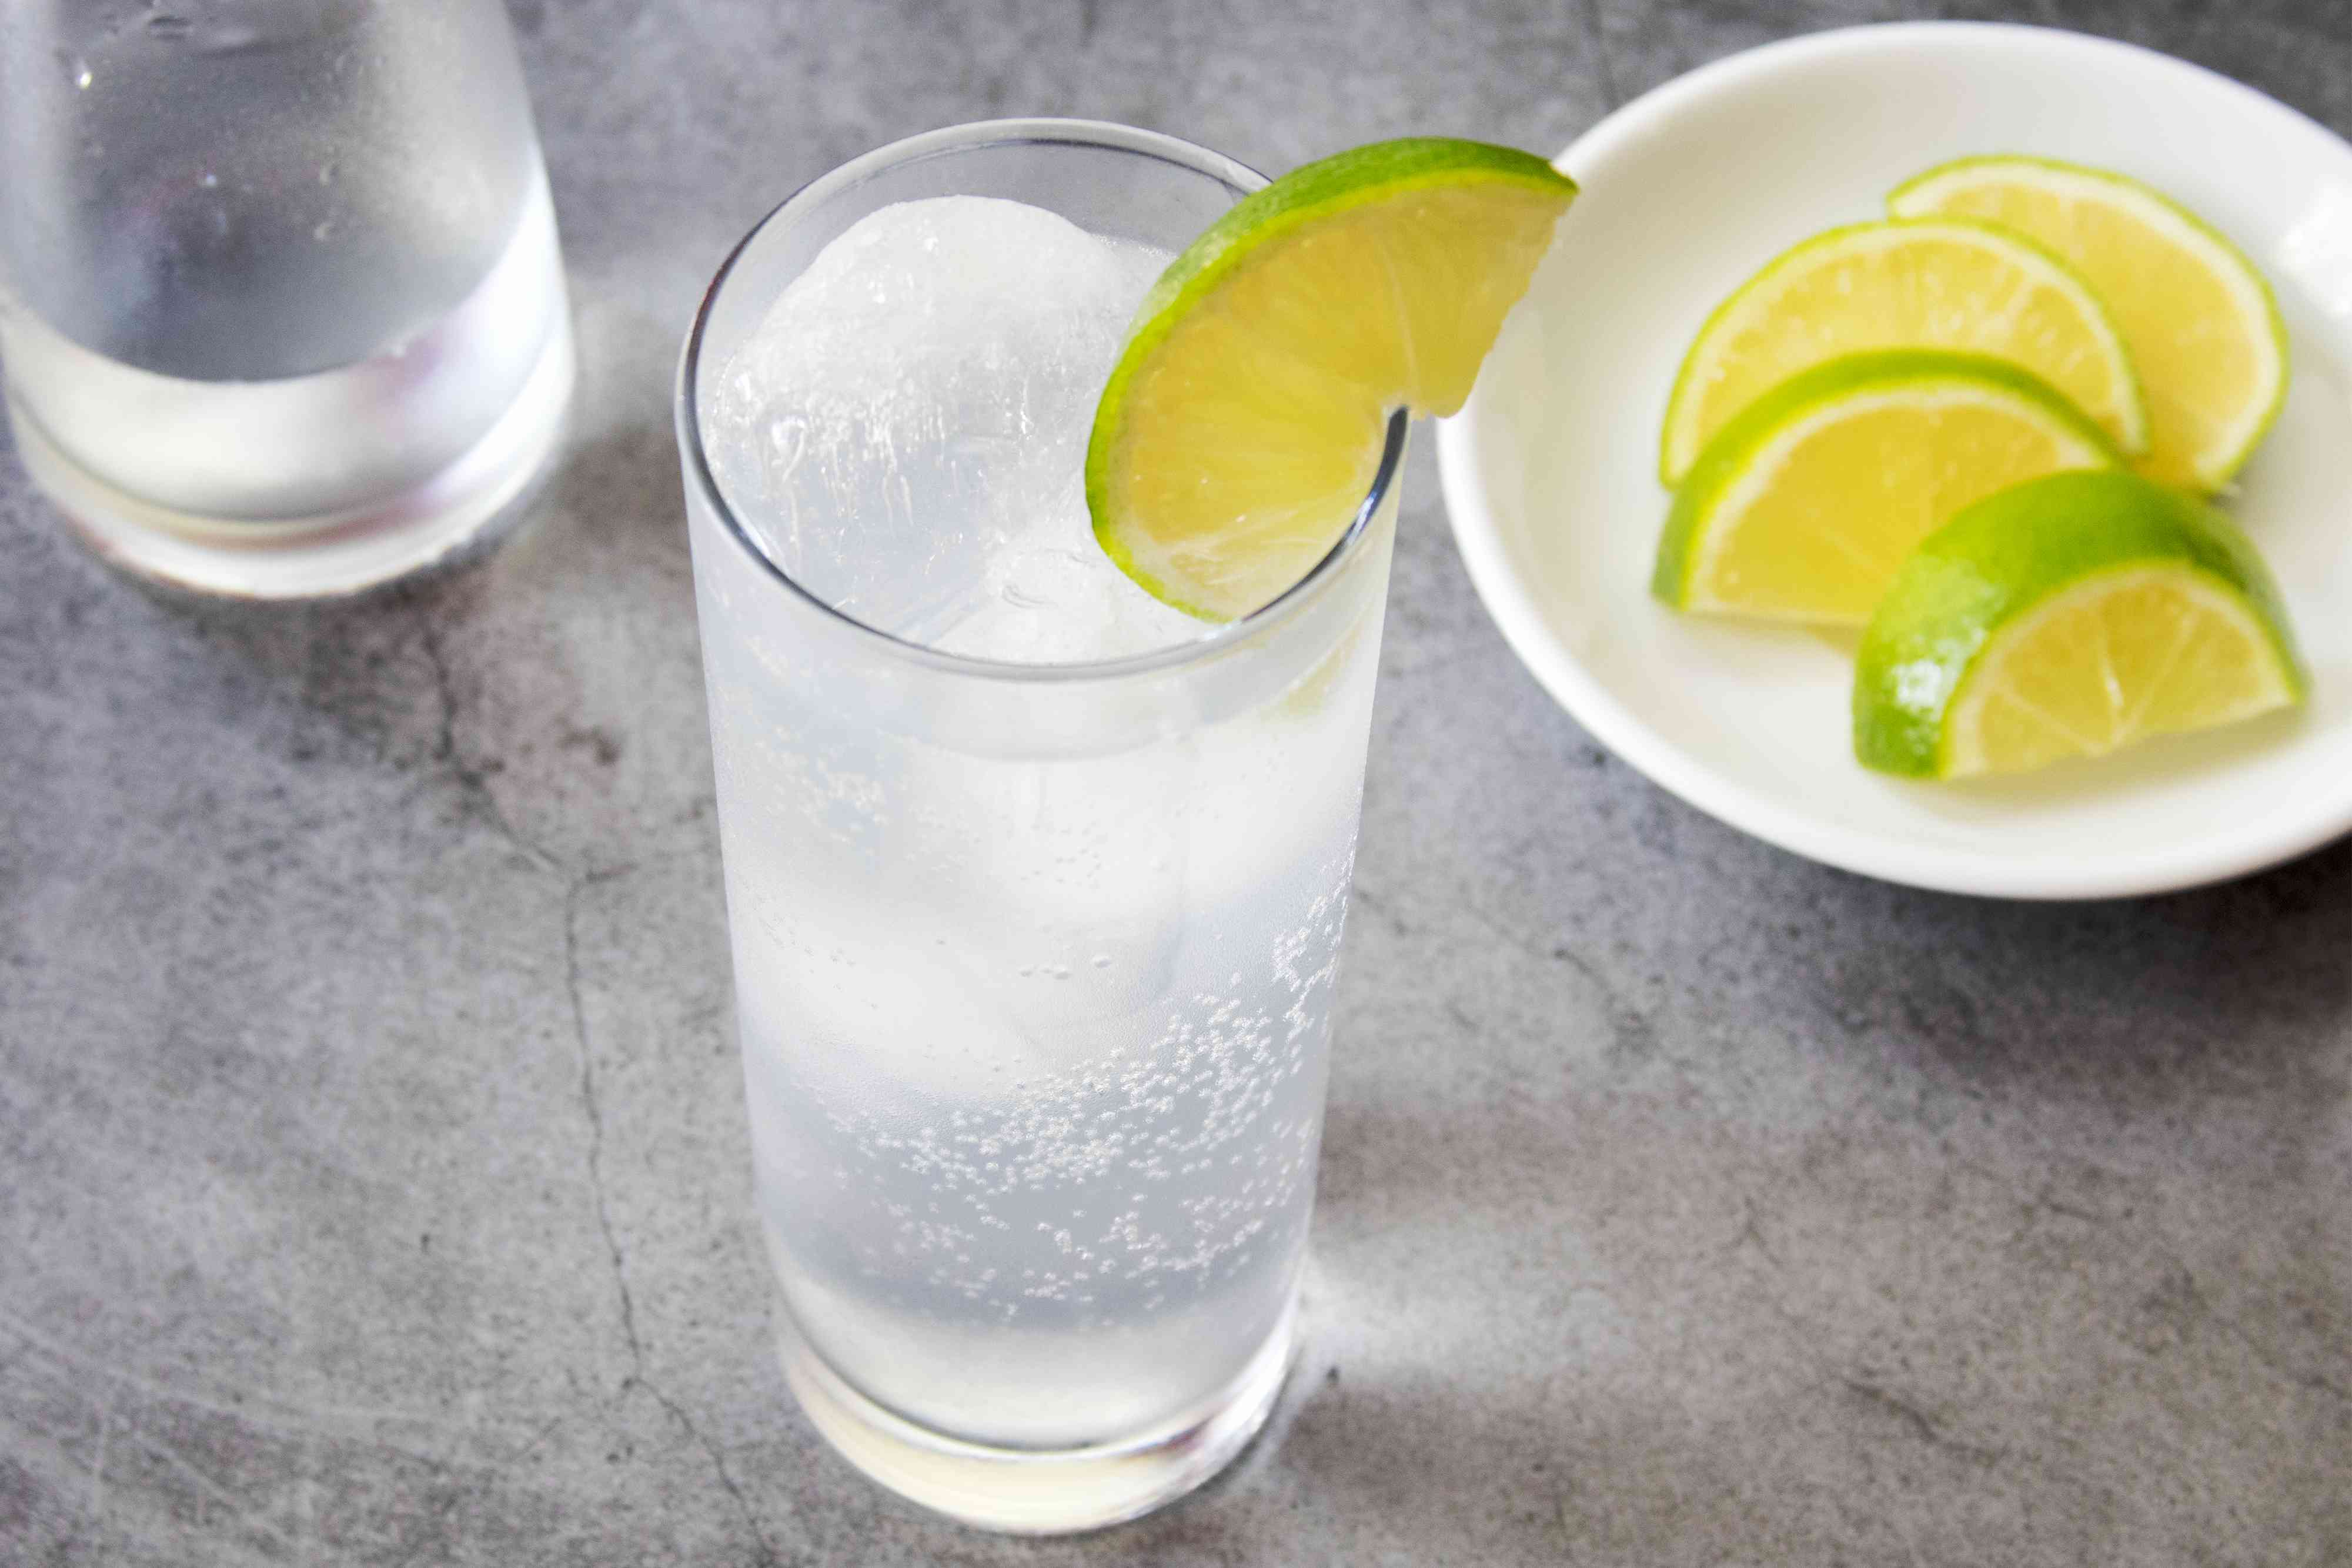 Vodka Tonic Garnished With a Lime Wedge